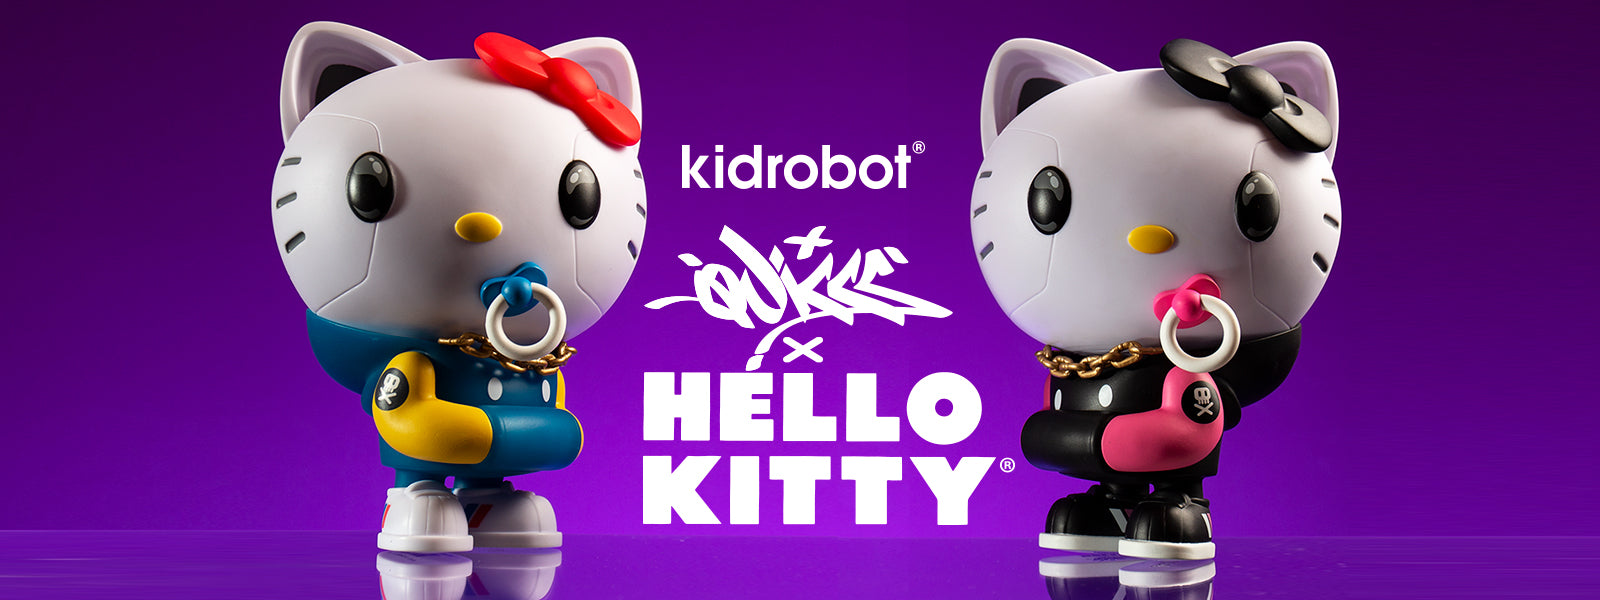 4beb38278 Hello Kitty x Kidrobot - Sanrio Hello Kitty Collectibles & Art Toys